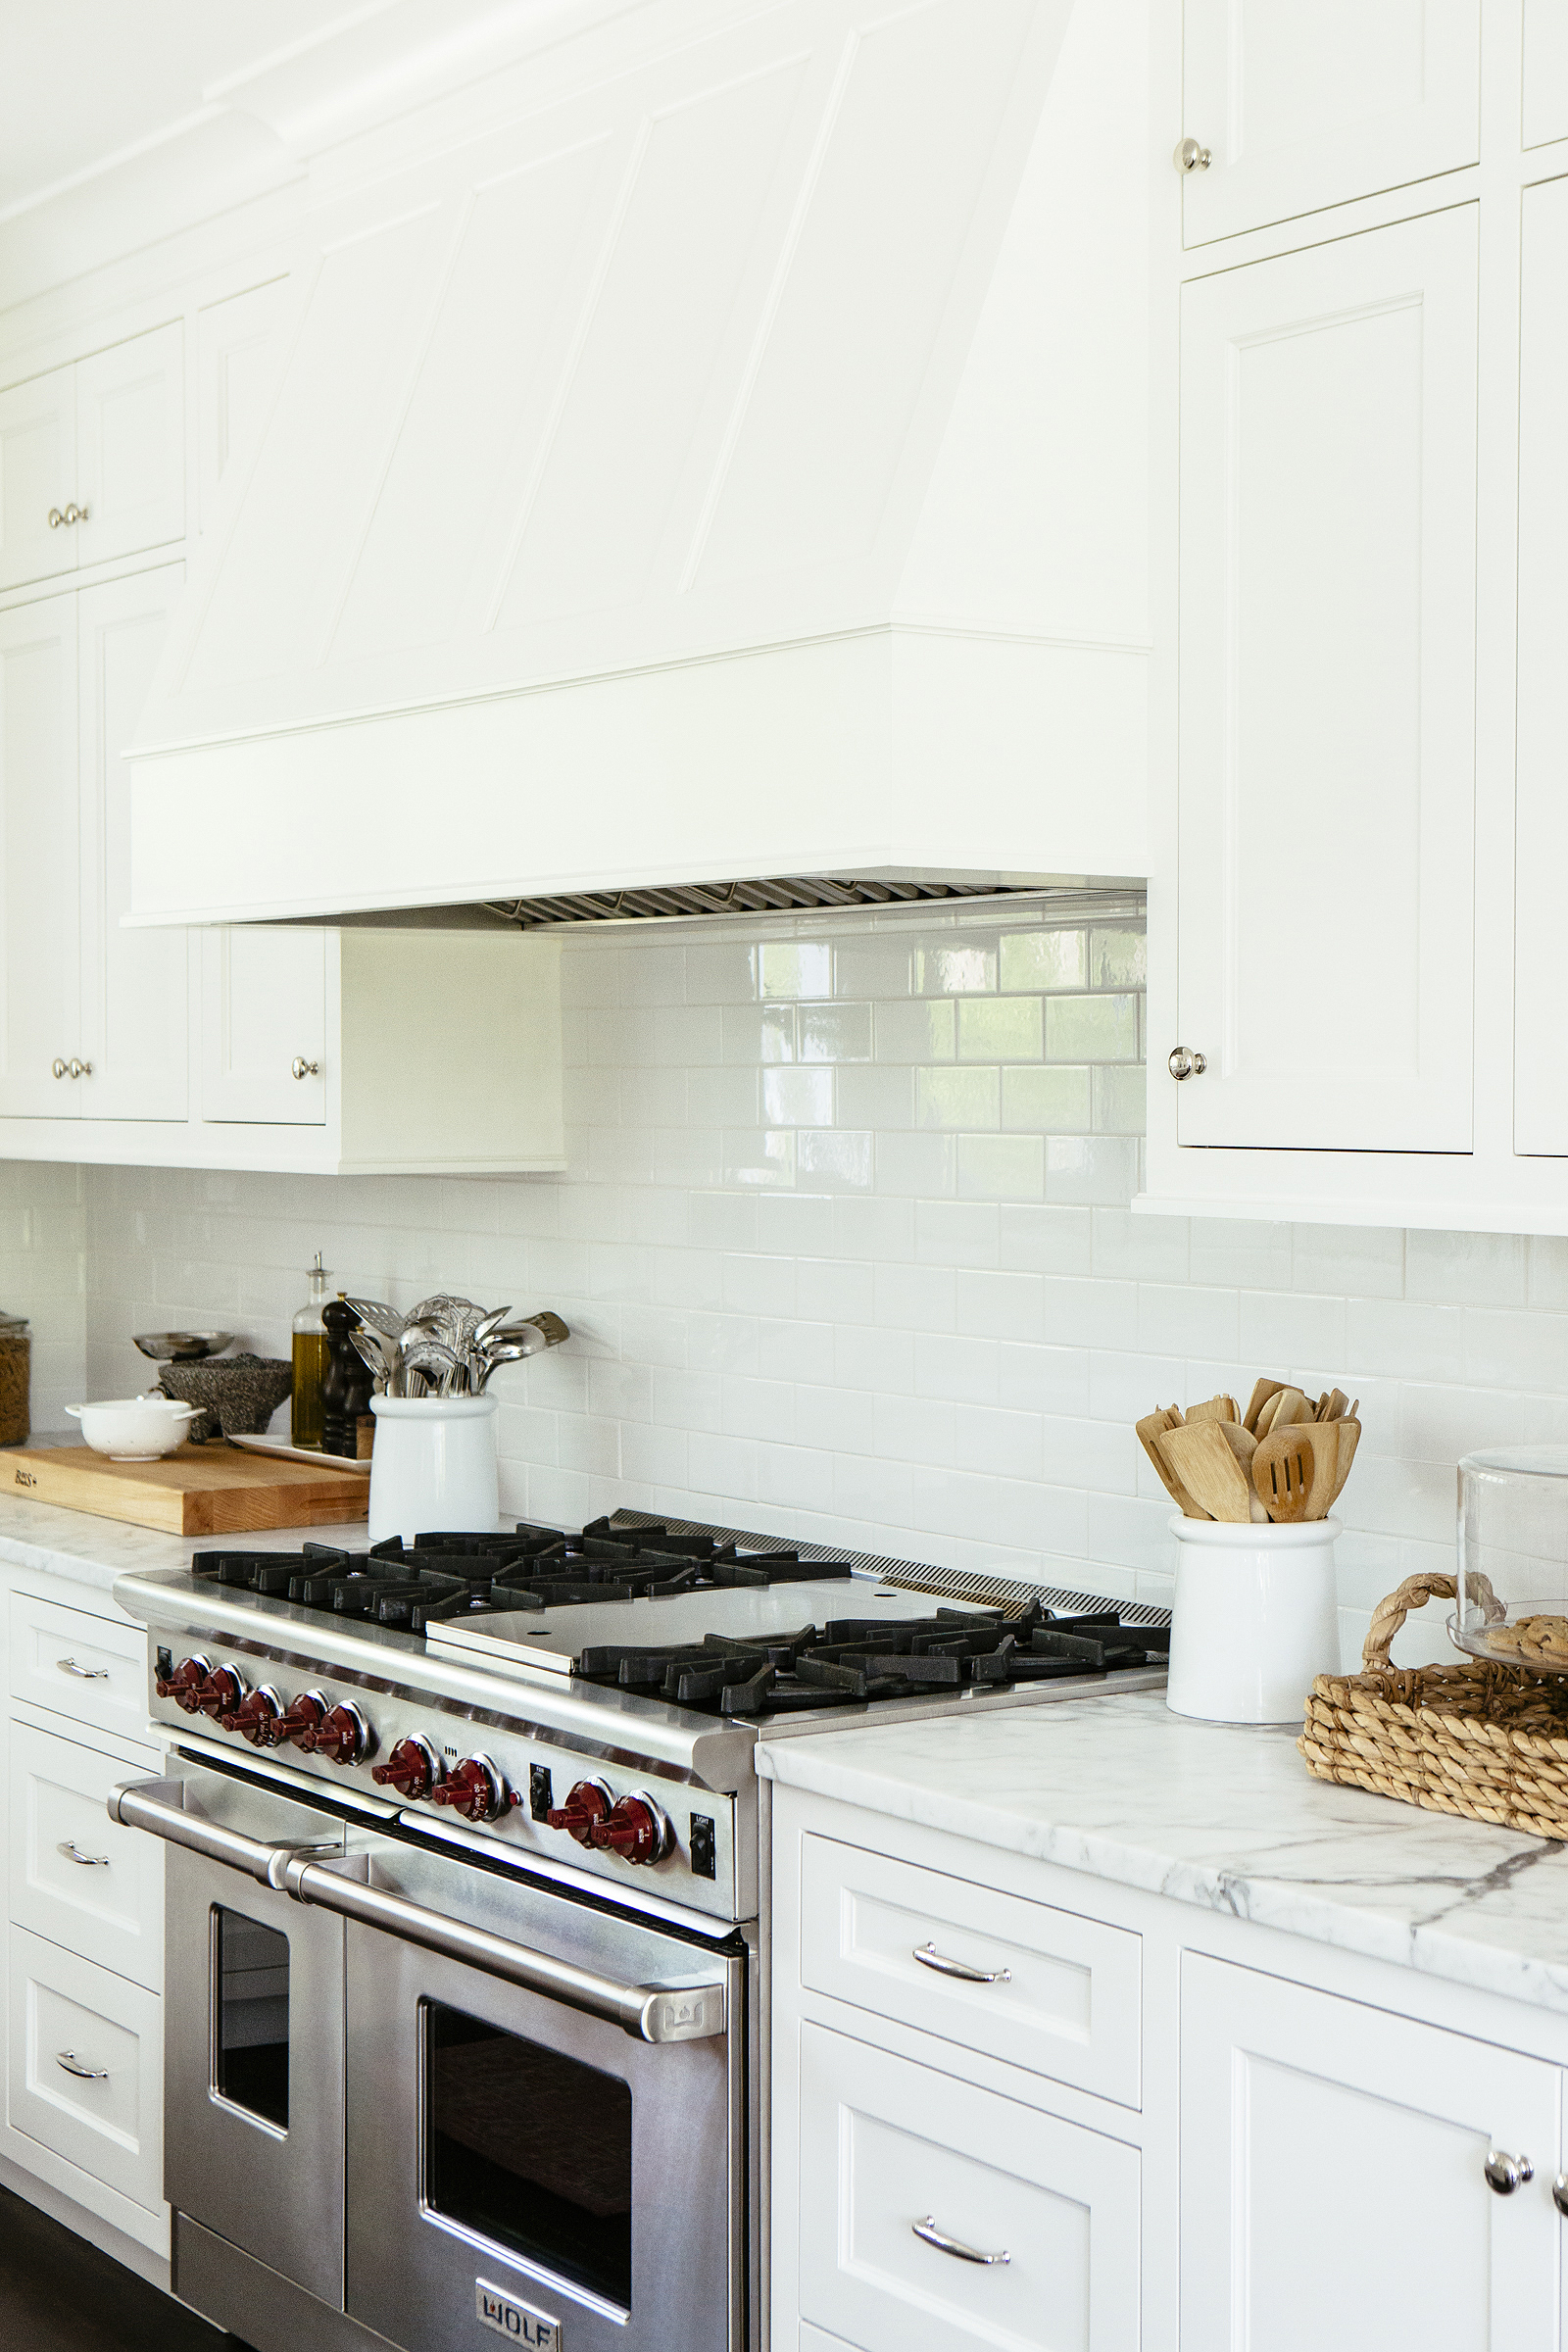 Backsplash Tile Design Ideas